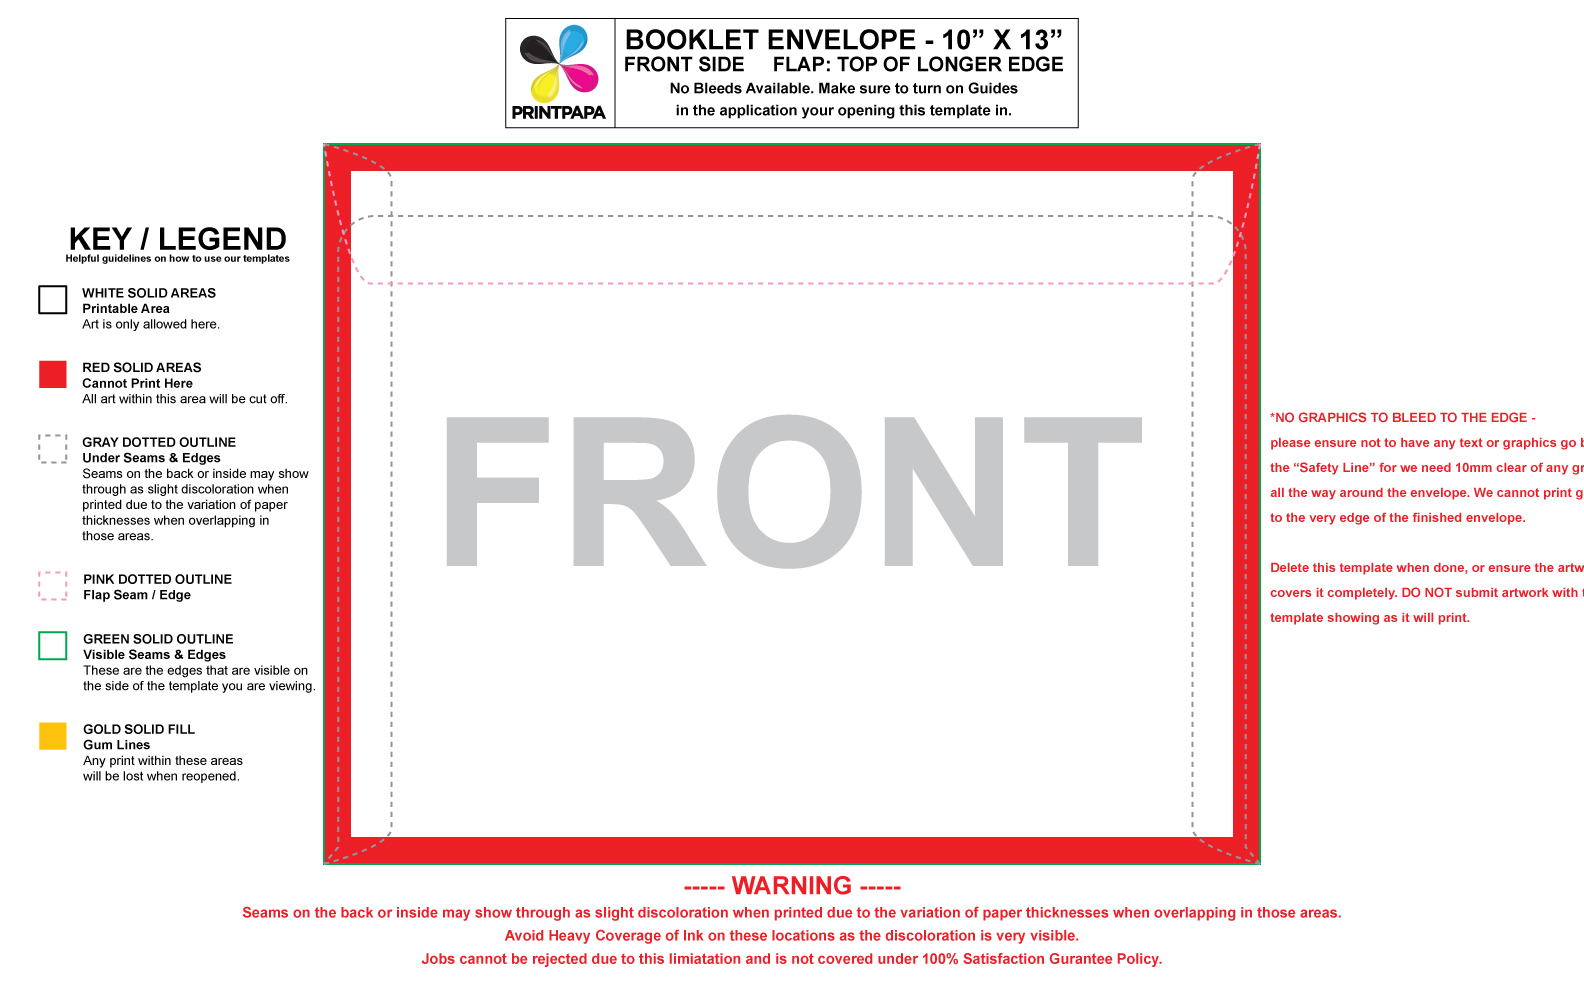 Find a printing template for 10x13 window envelope